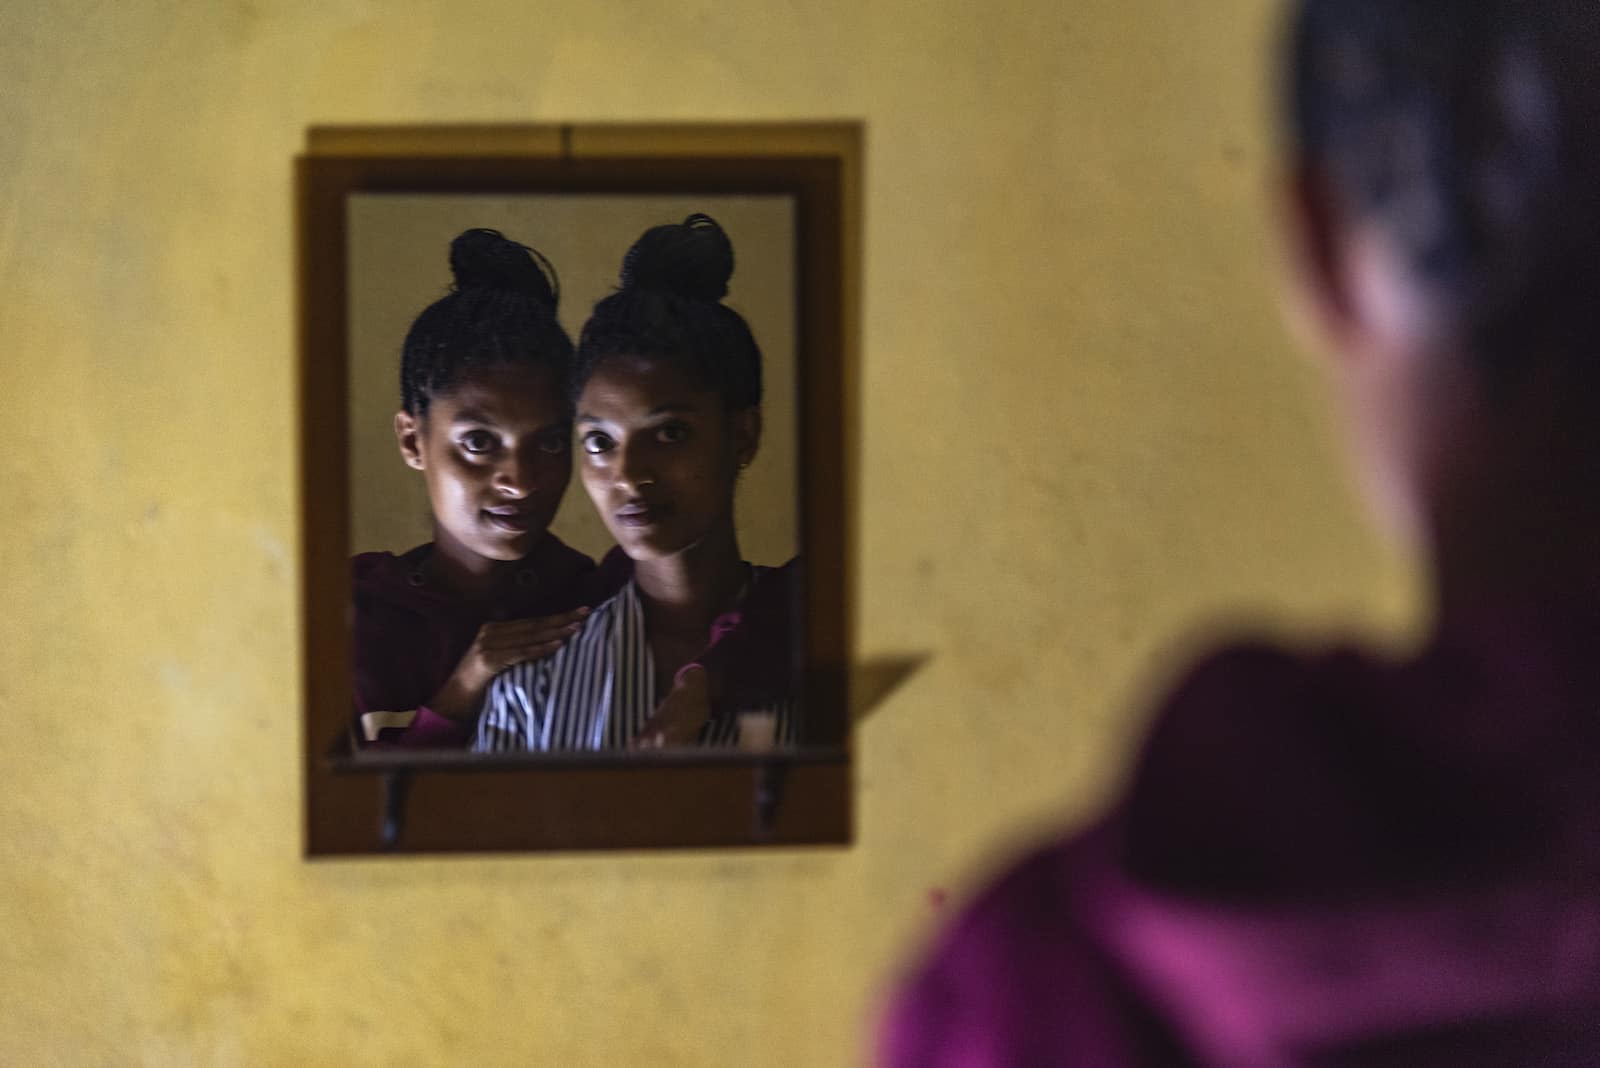 An orphan story: The mirror reflection of two teenage girls looking in the mirror.